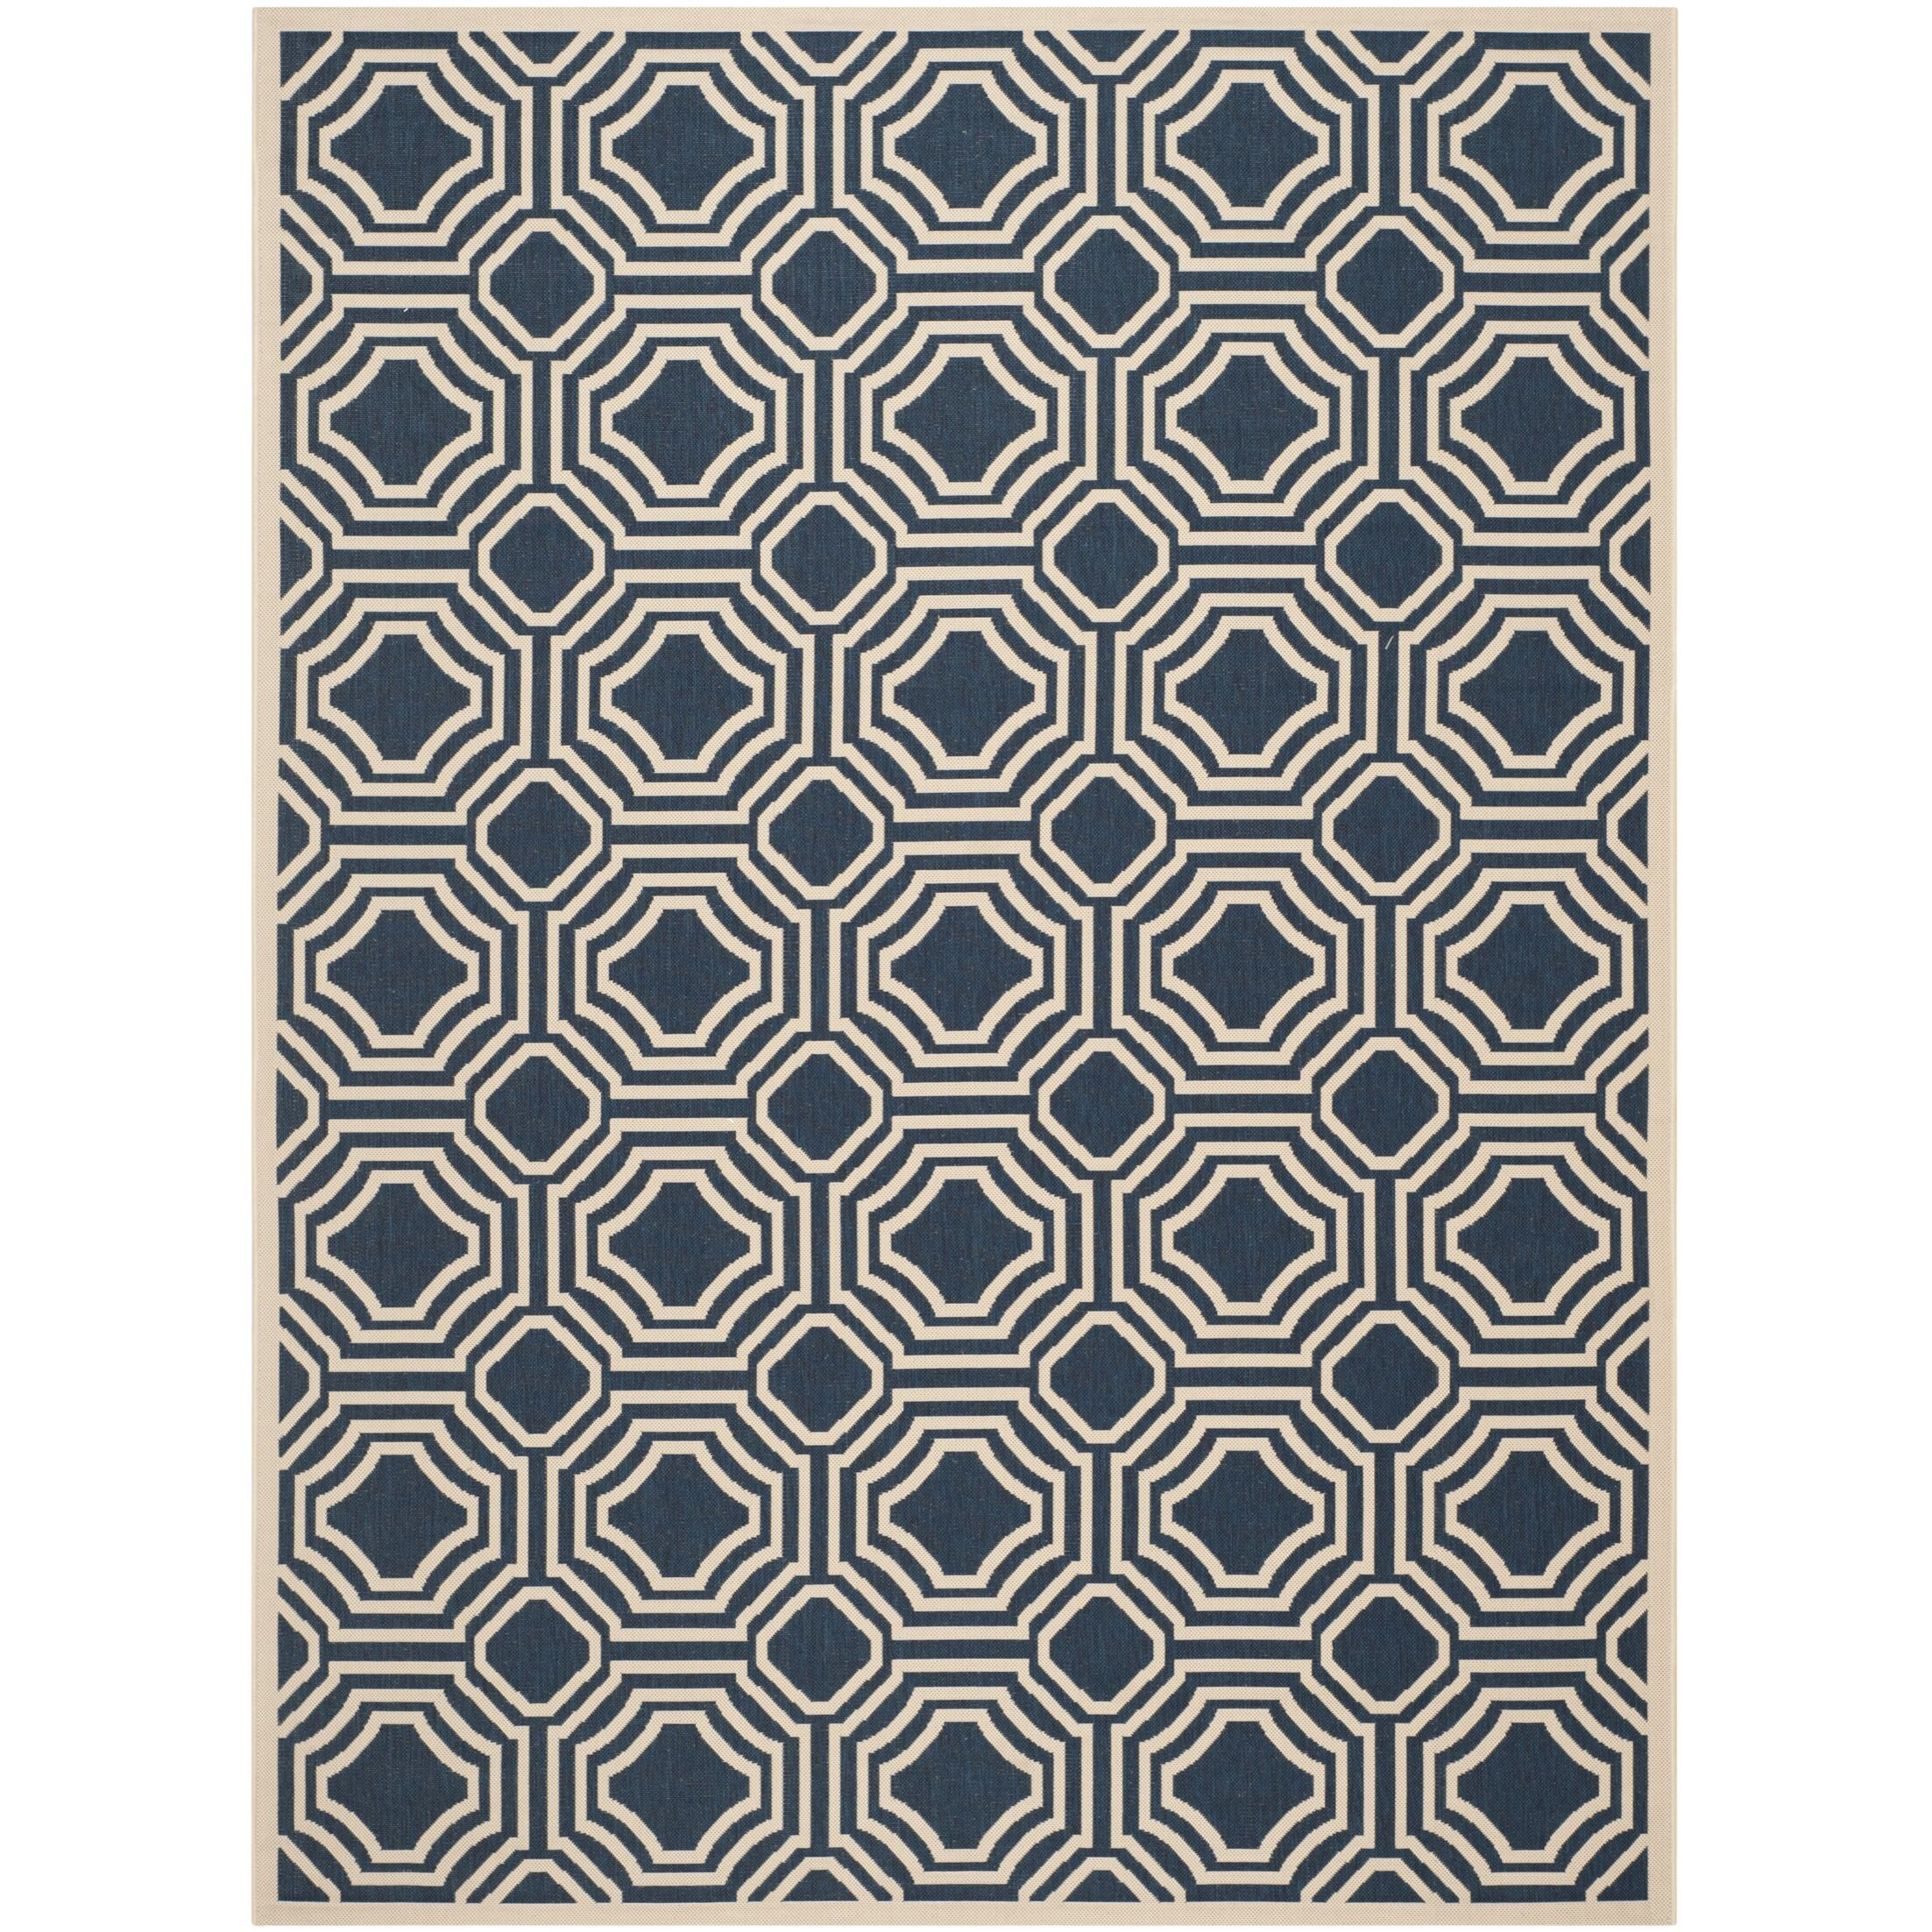 Navy/Beige Indoor/Outdoor Area Rug Rug Size: Rectangle 9' x 12'